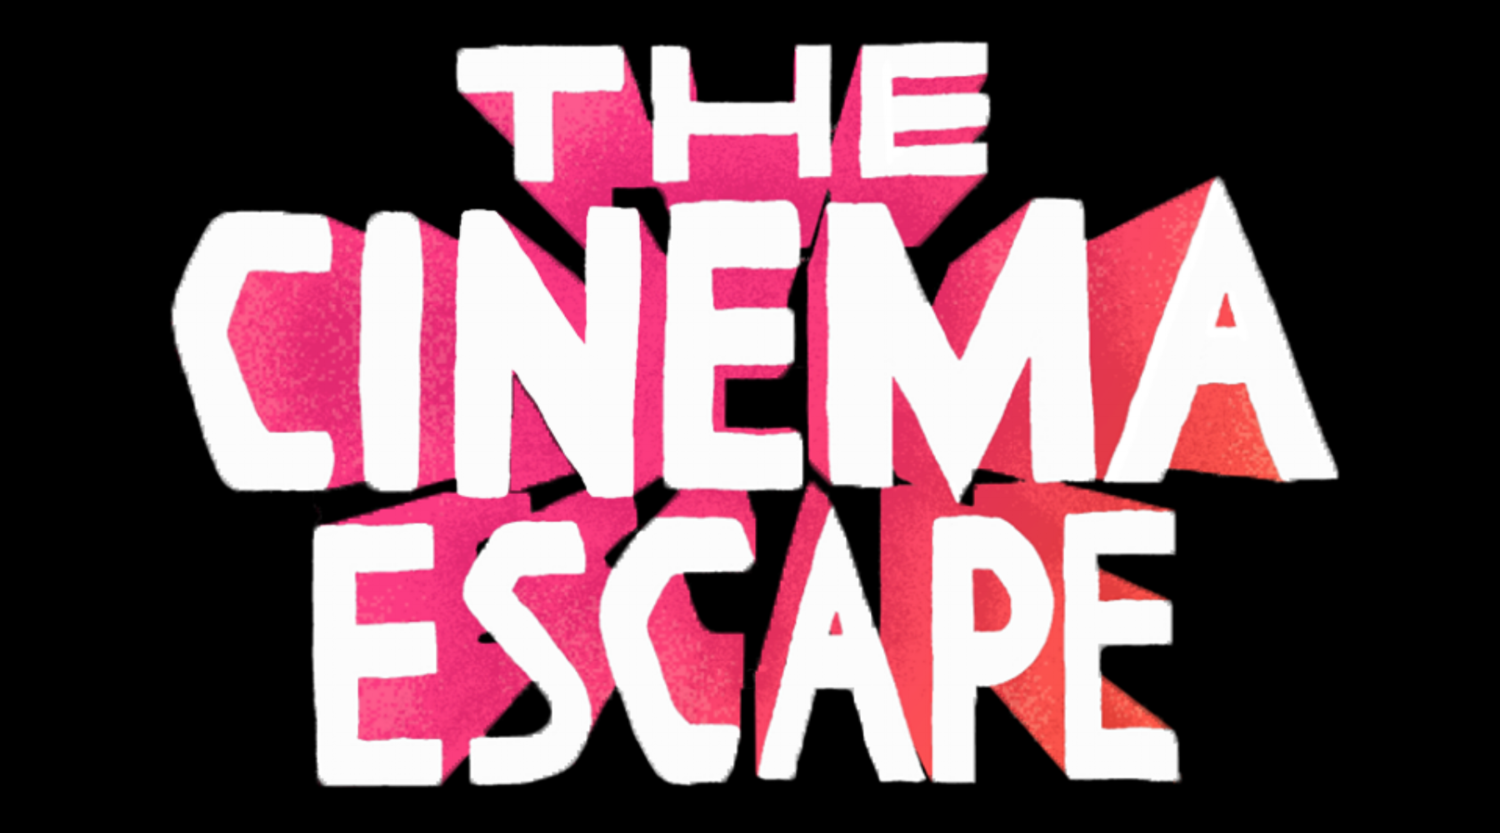 THE CINEMA ESCAPE